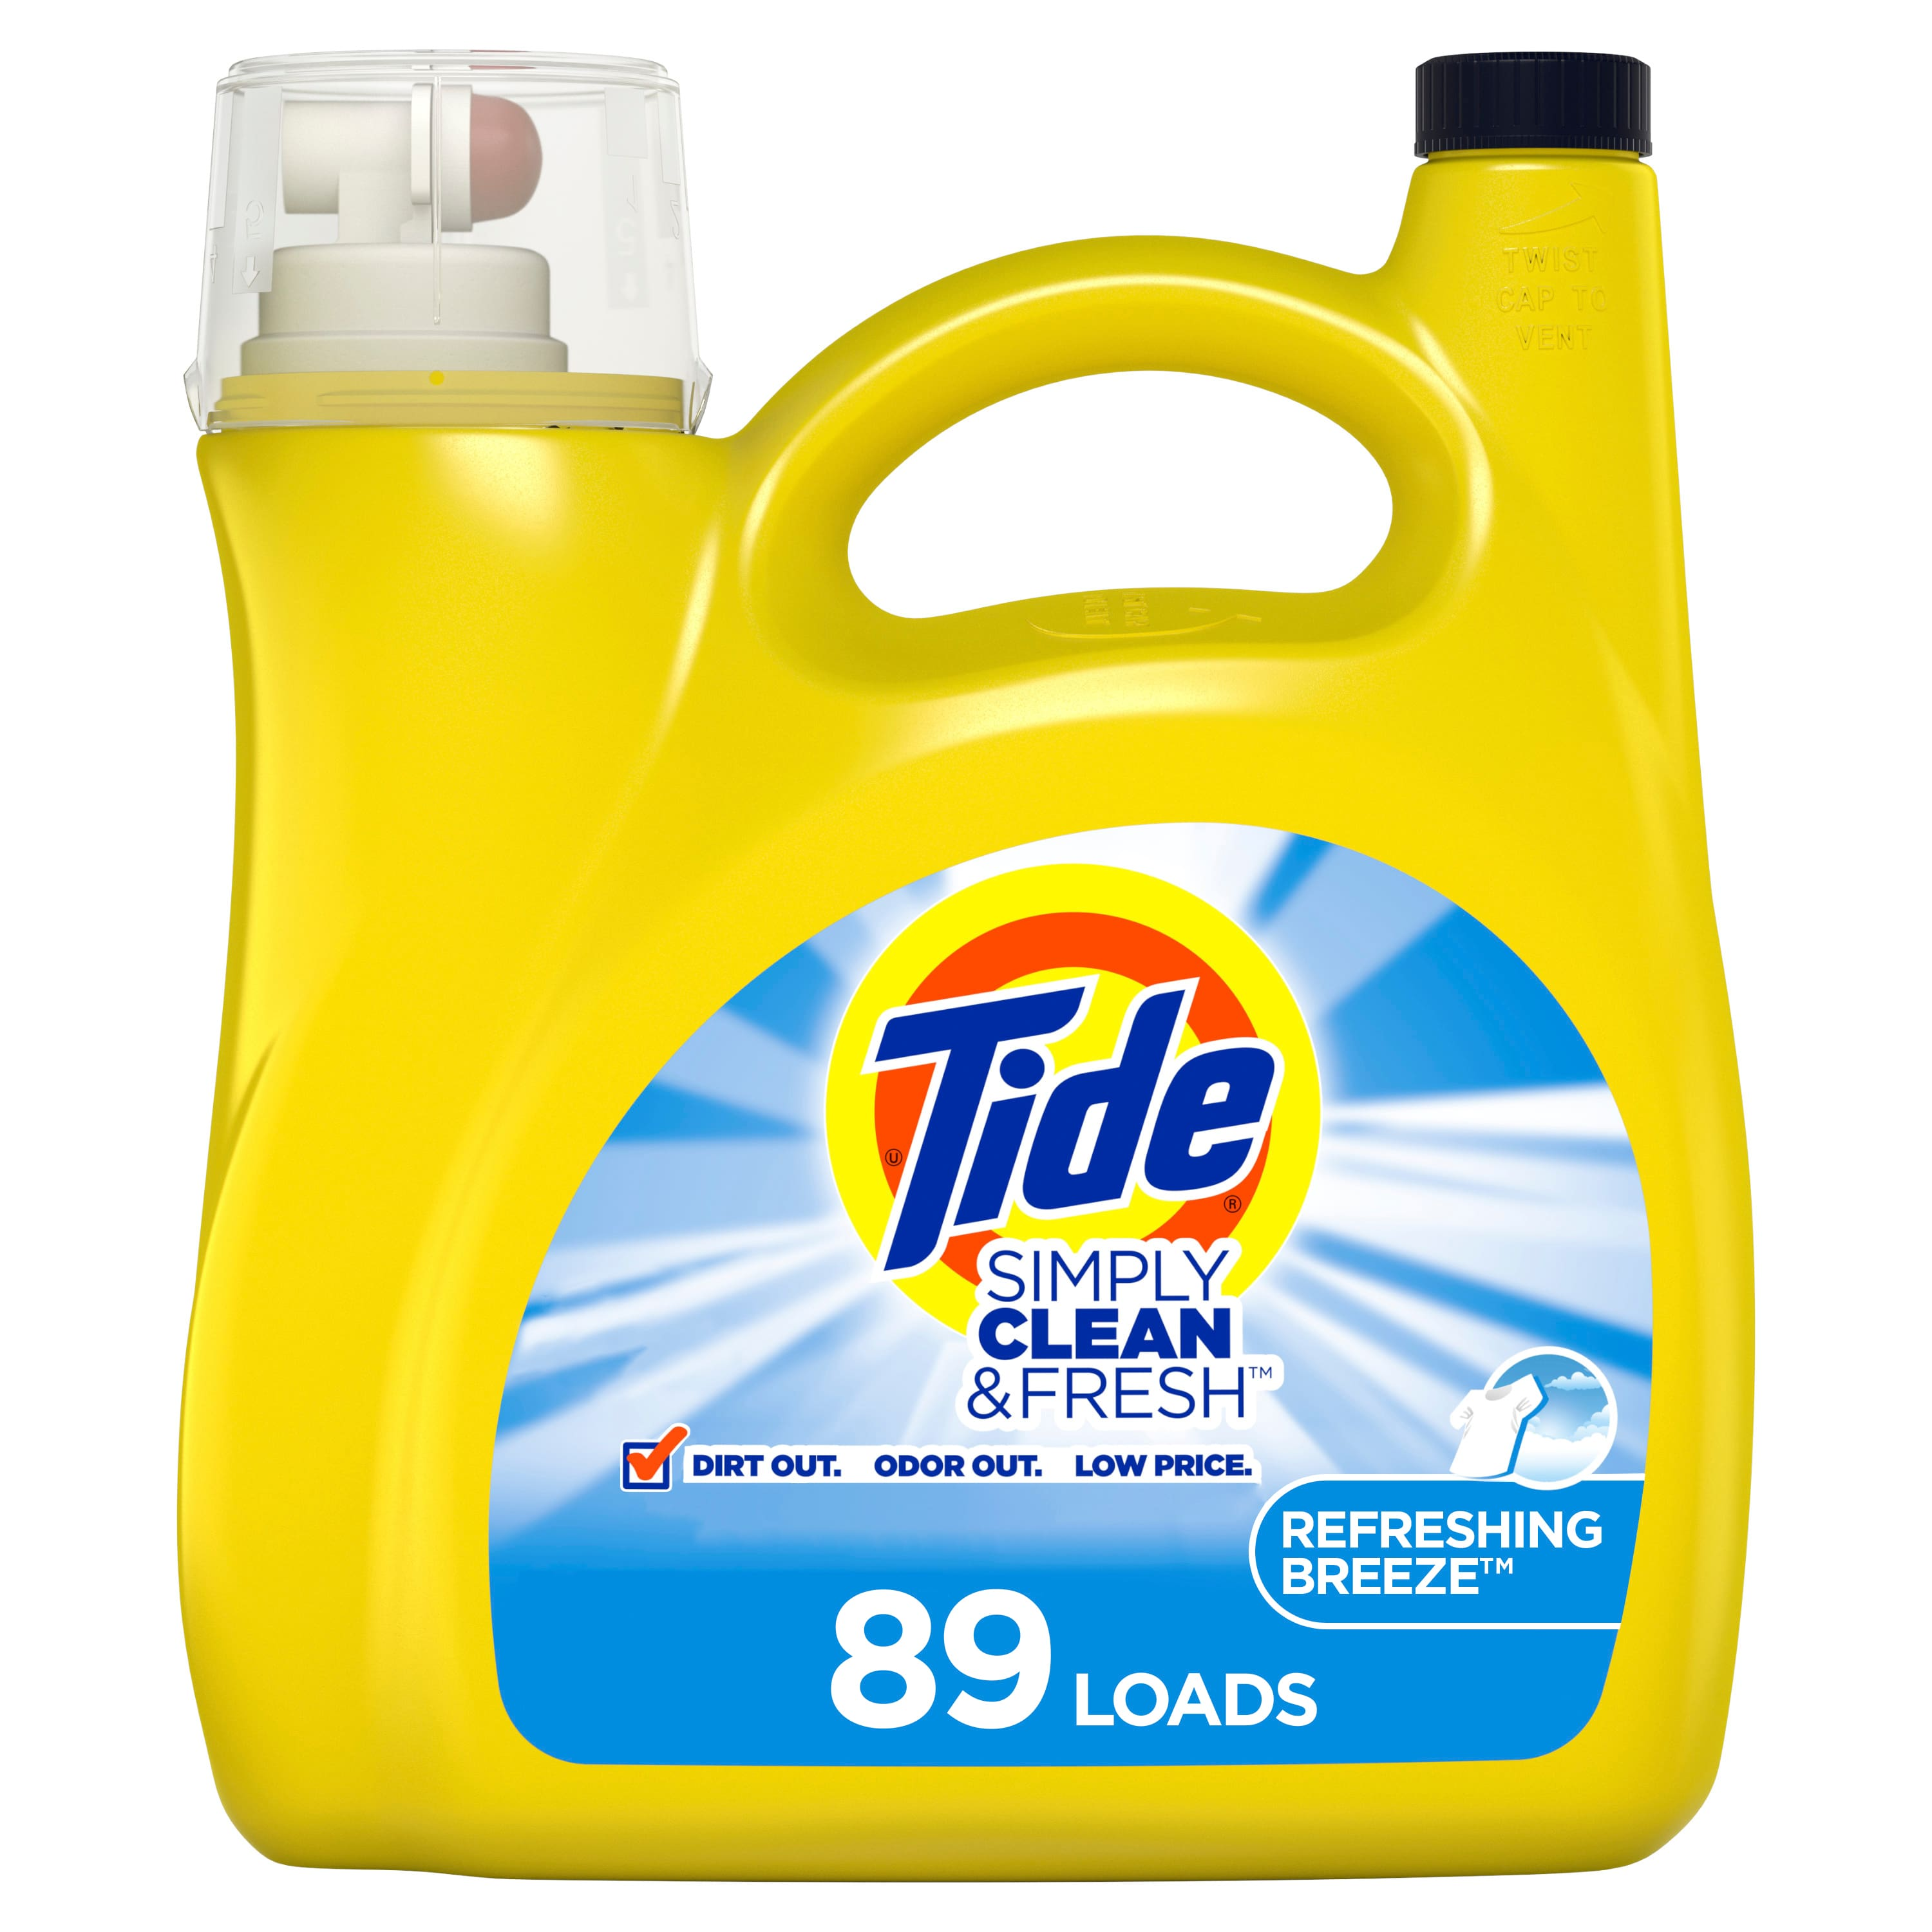 Tide Simply Clean and Fresh 138 oz. Refreshing Breeze Liquid Laundry Detergent - $4.80 B&M YMMV Home Depot